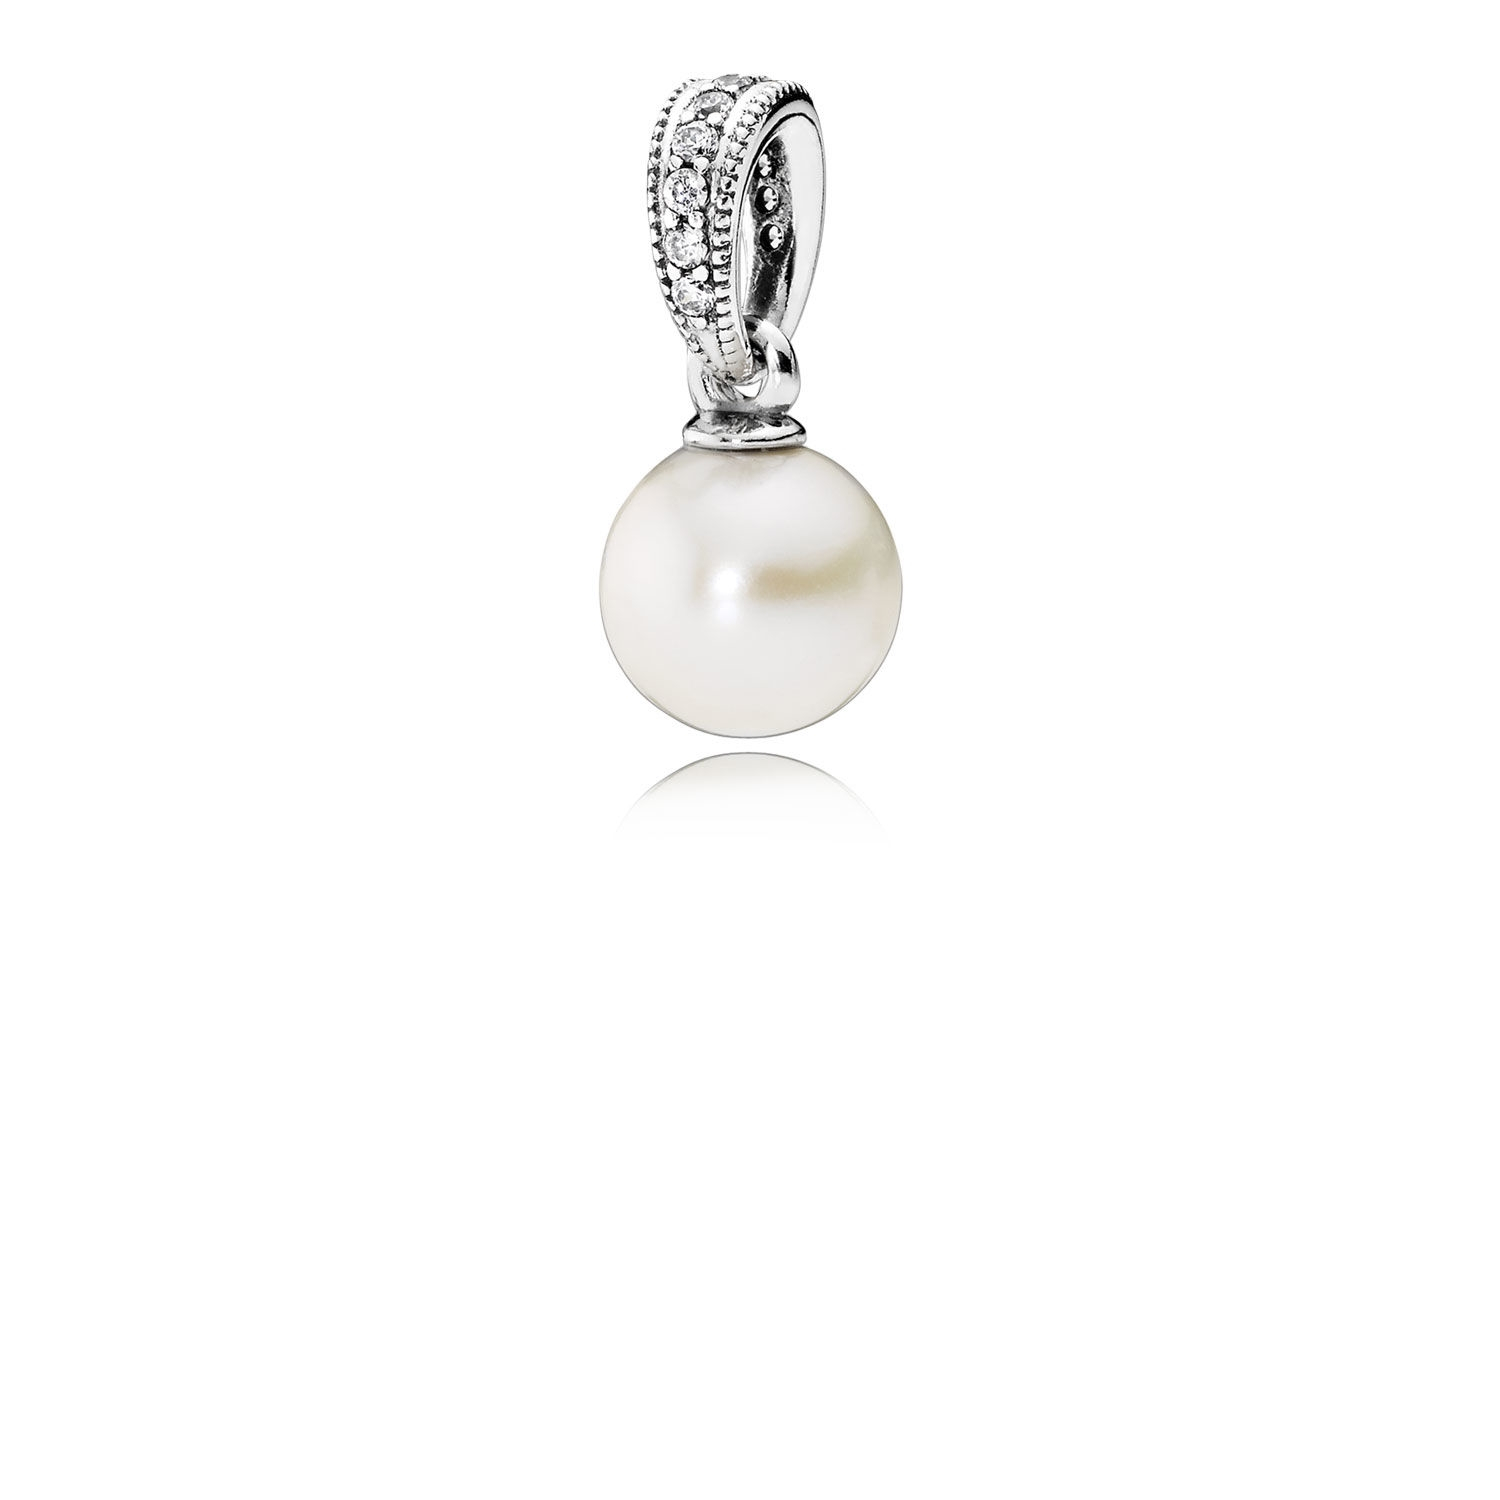 Pandora Elegant Beauty Pendant, White Pearl & Clear Cz 390393p Pertaining To Newest November Droplet Pendant Necklaces (View 9 of 25)